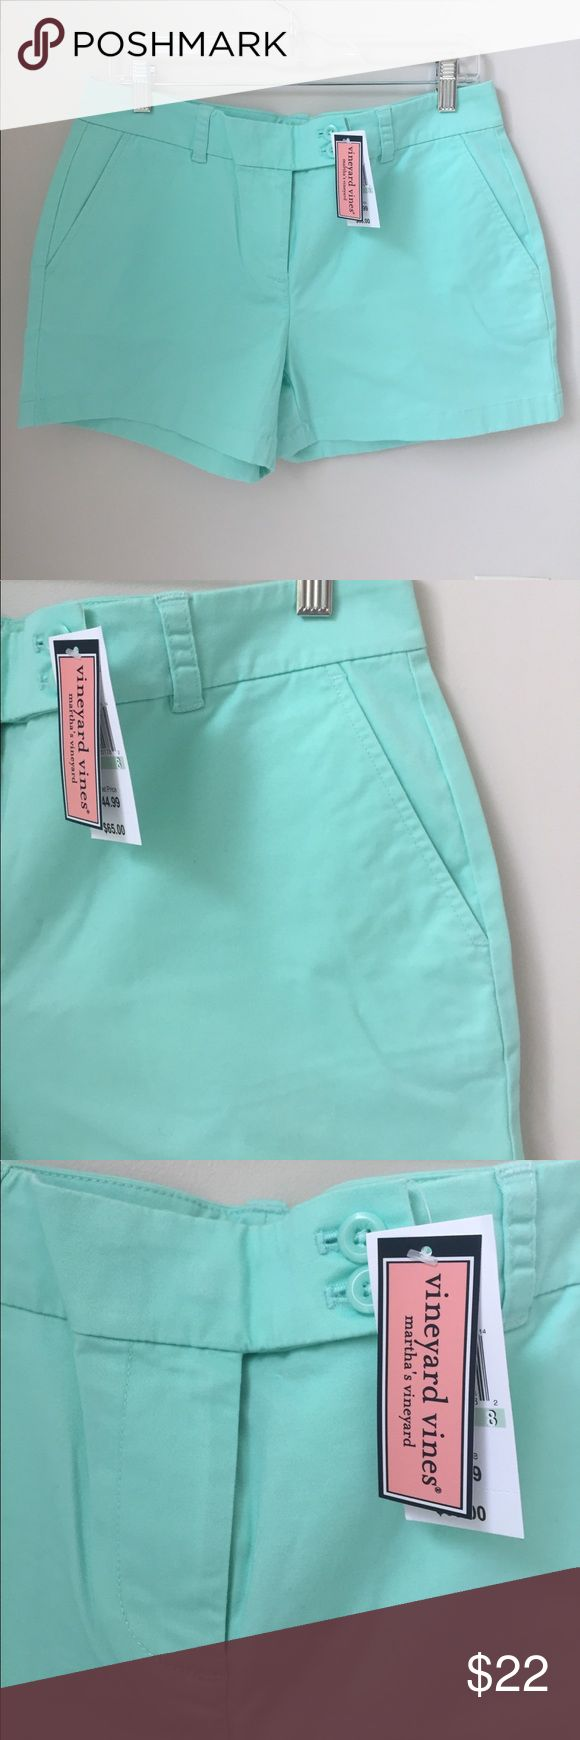 Vineyard Vines Shorts NWT!! From outlet; 2 back welt pockets; 2 front slant pockets; zip, button & hook closure Vineyard Vines Shorts